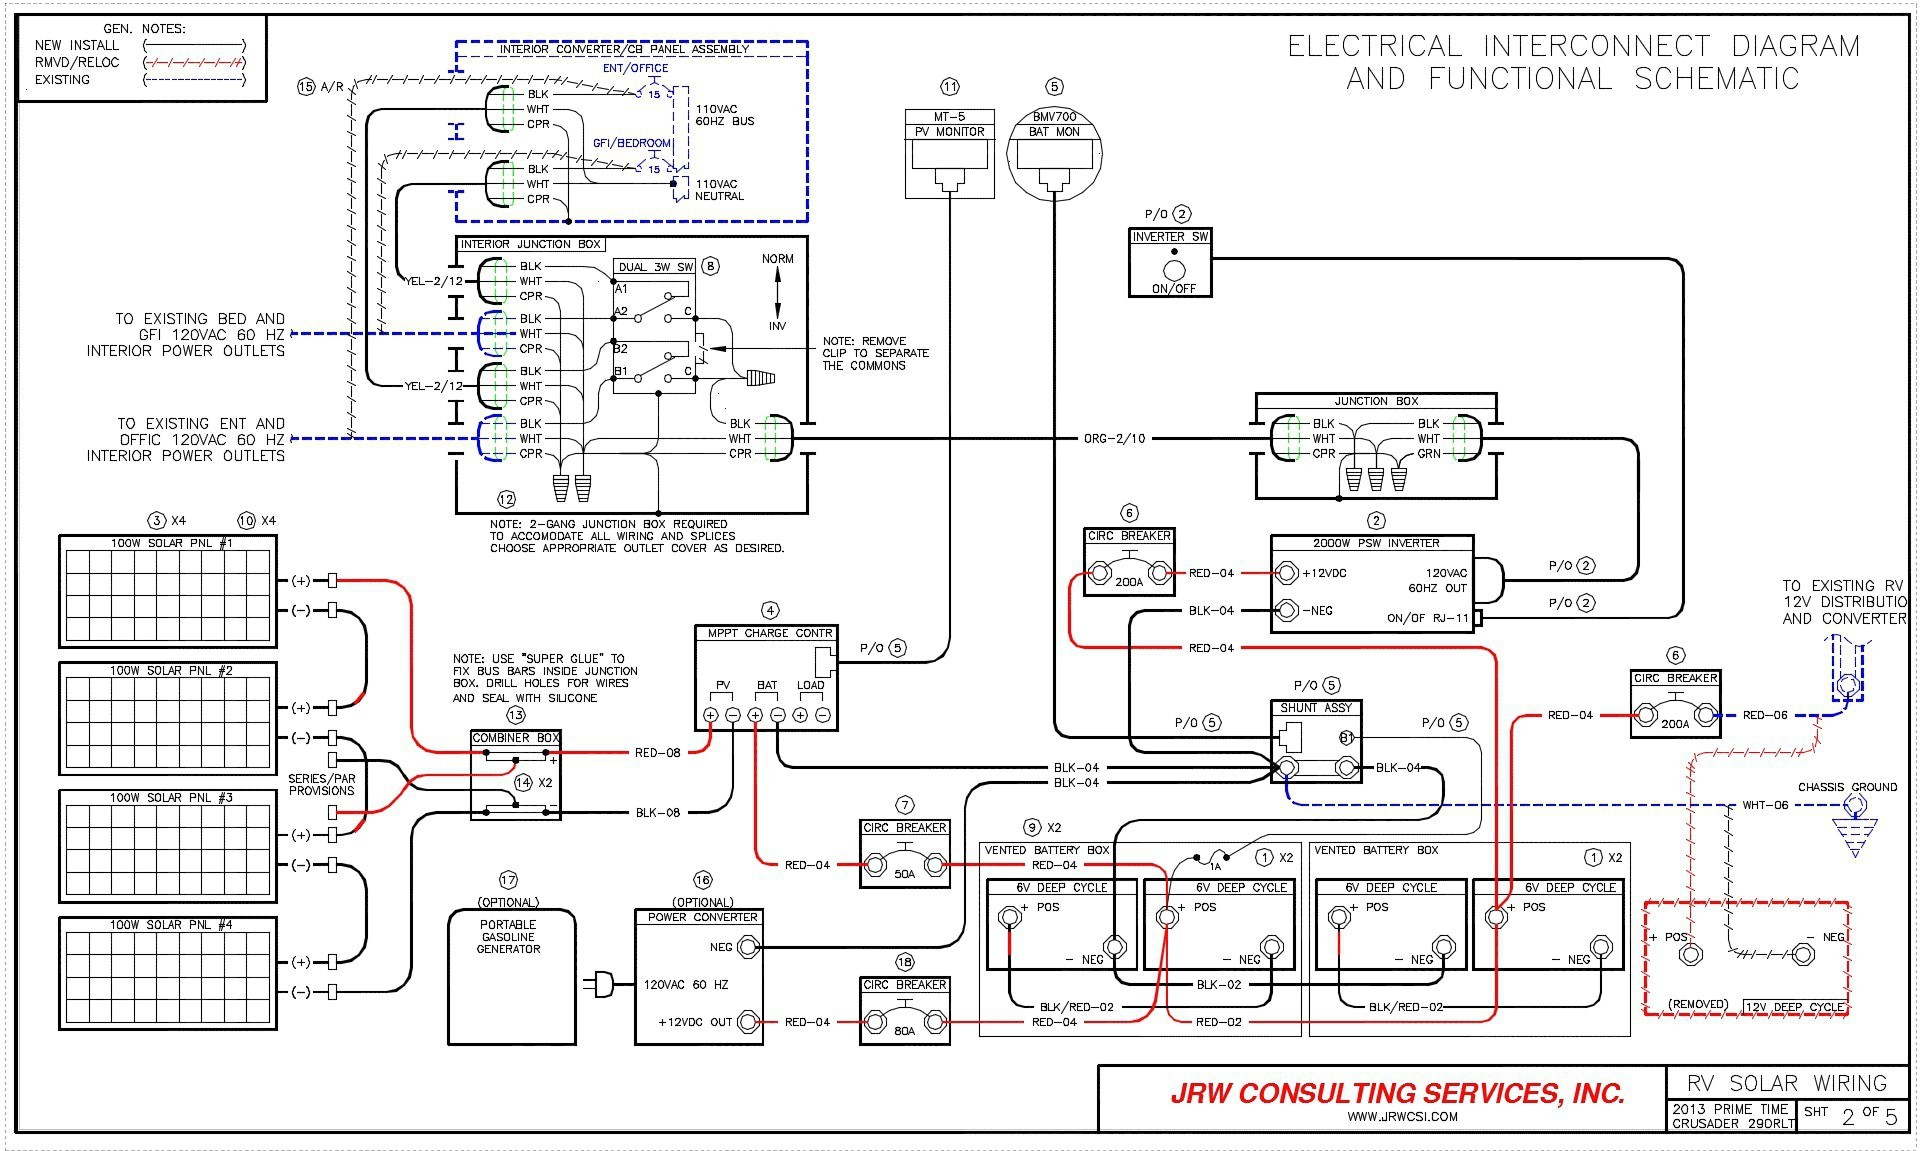 Rv solar Wiring Diagram | My Wiring DIagram